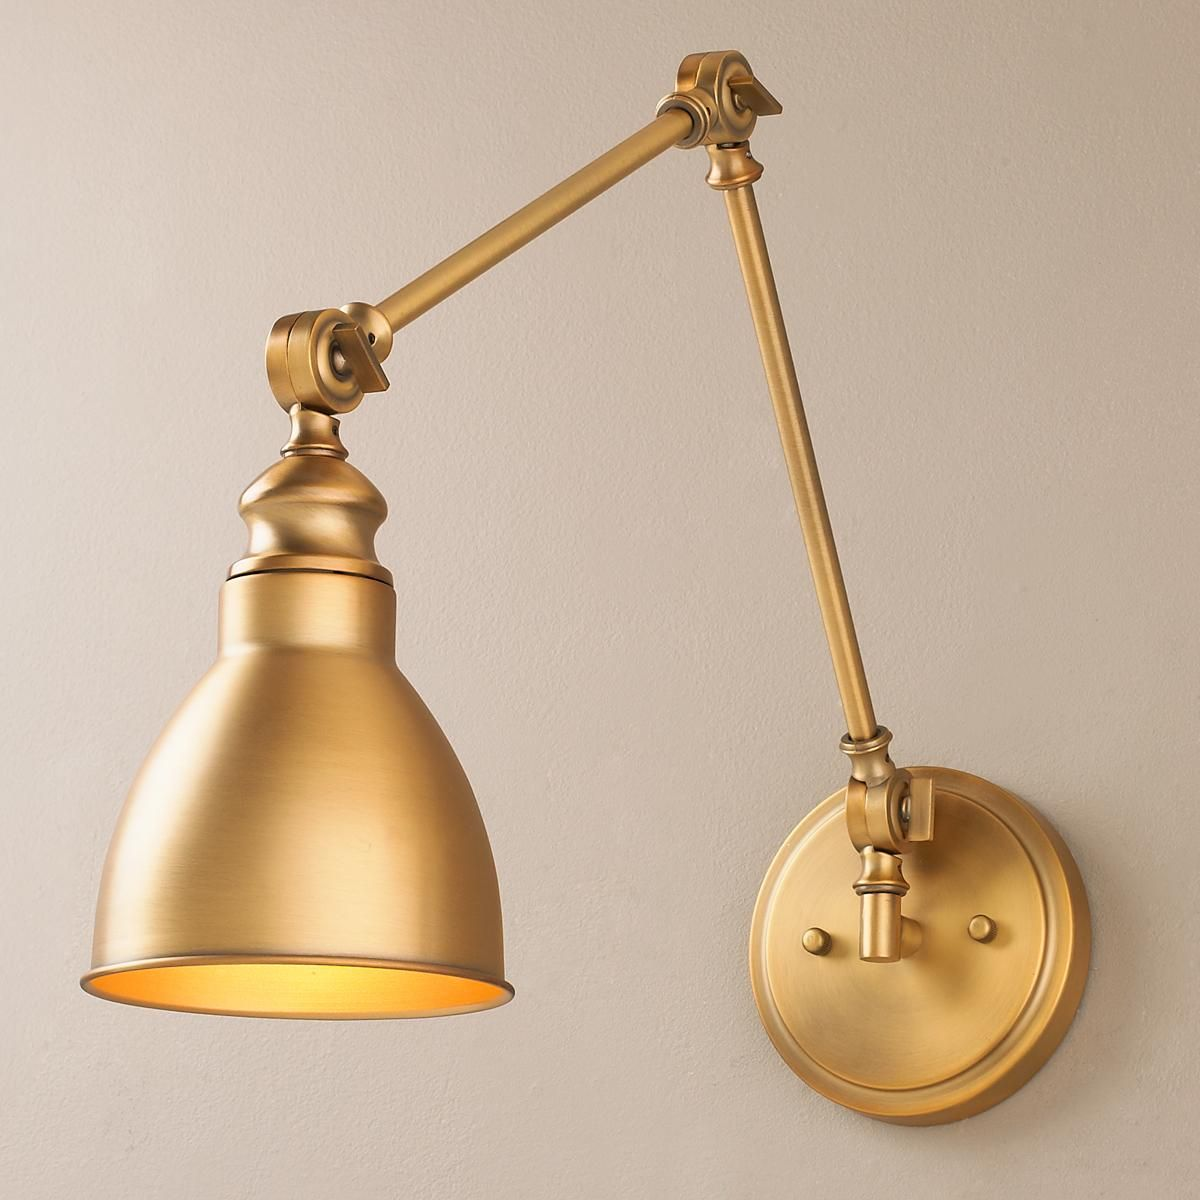 Adjustable Arm 1-Light Wall Sconce | Light walls, Wall ...